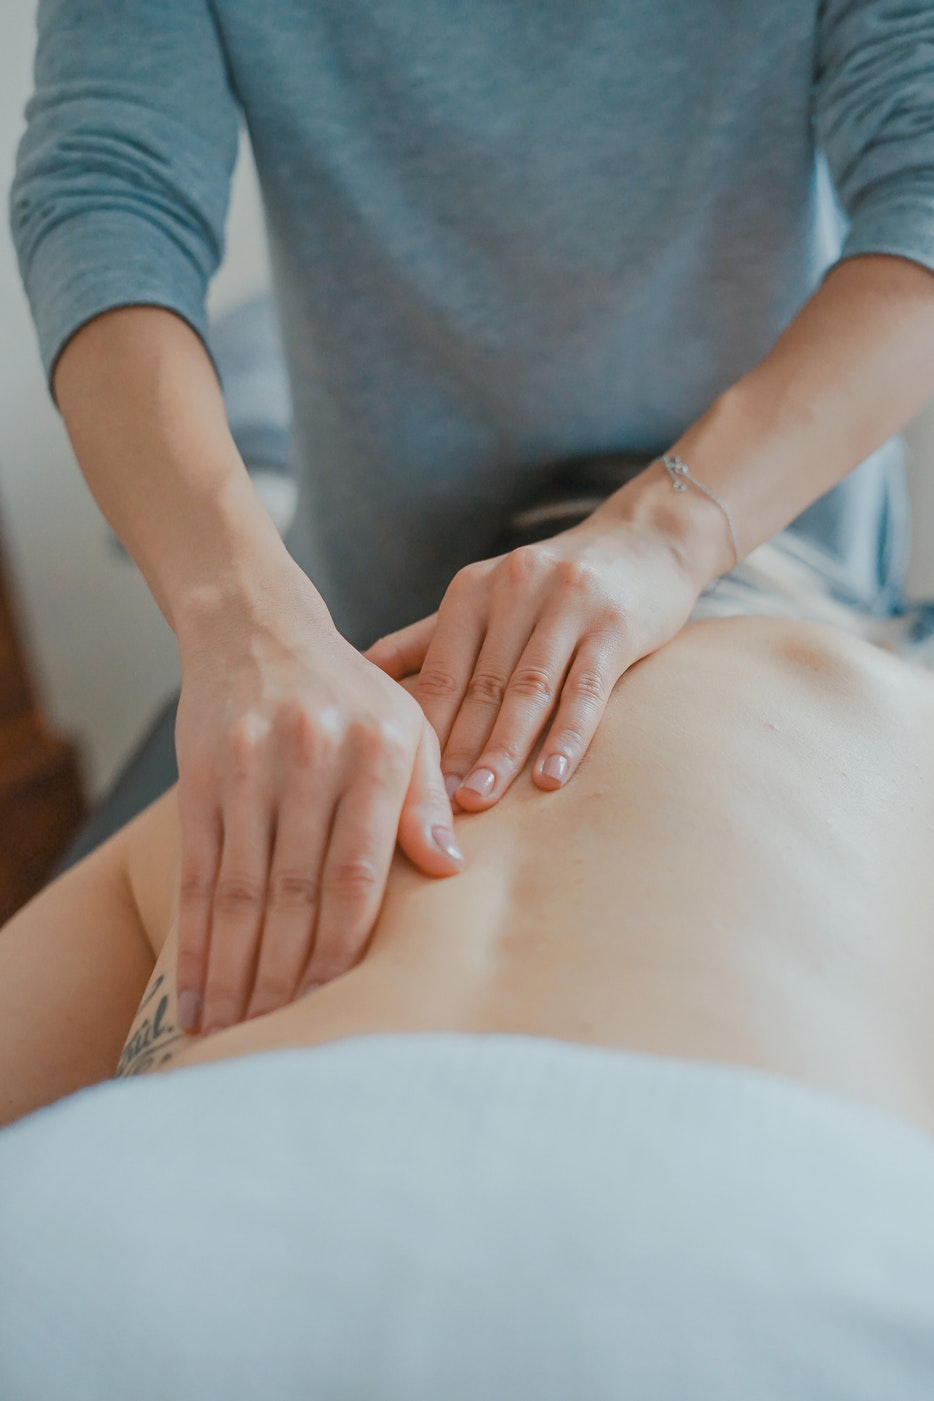 FULL BODY MASSAGE - 60 & 90 MINUTE OPTIONS